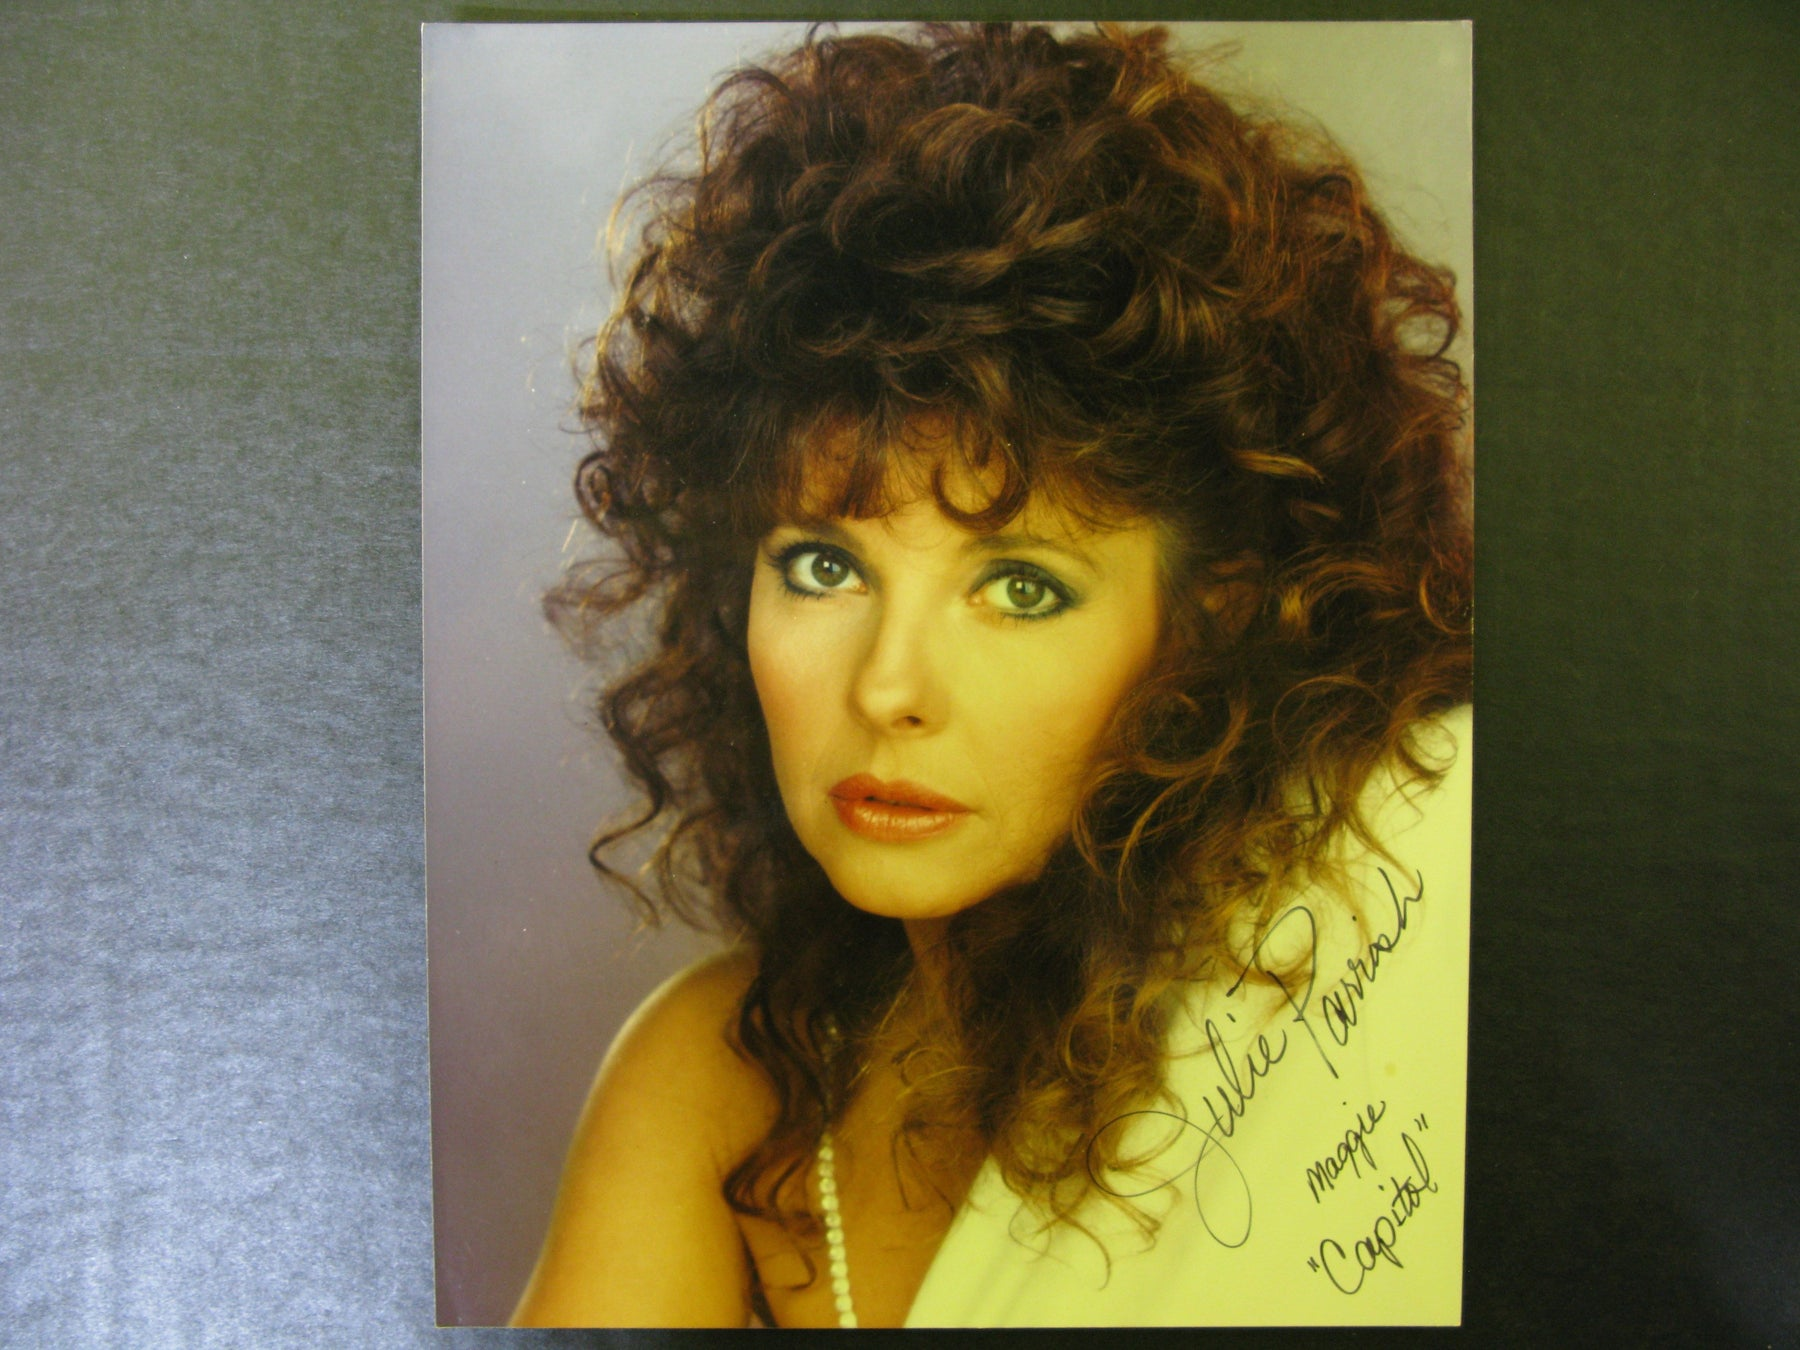 Star Trek Julie Parrish Signed Autographed Photo